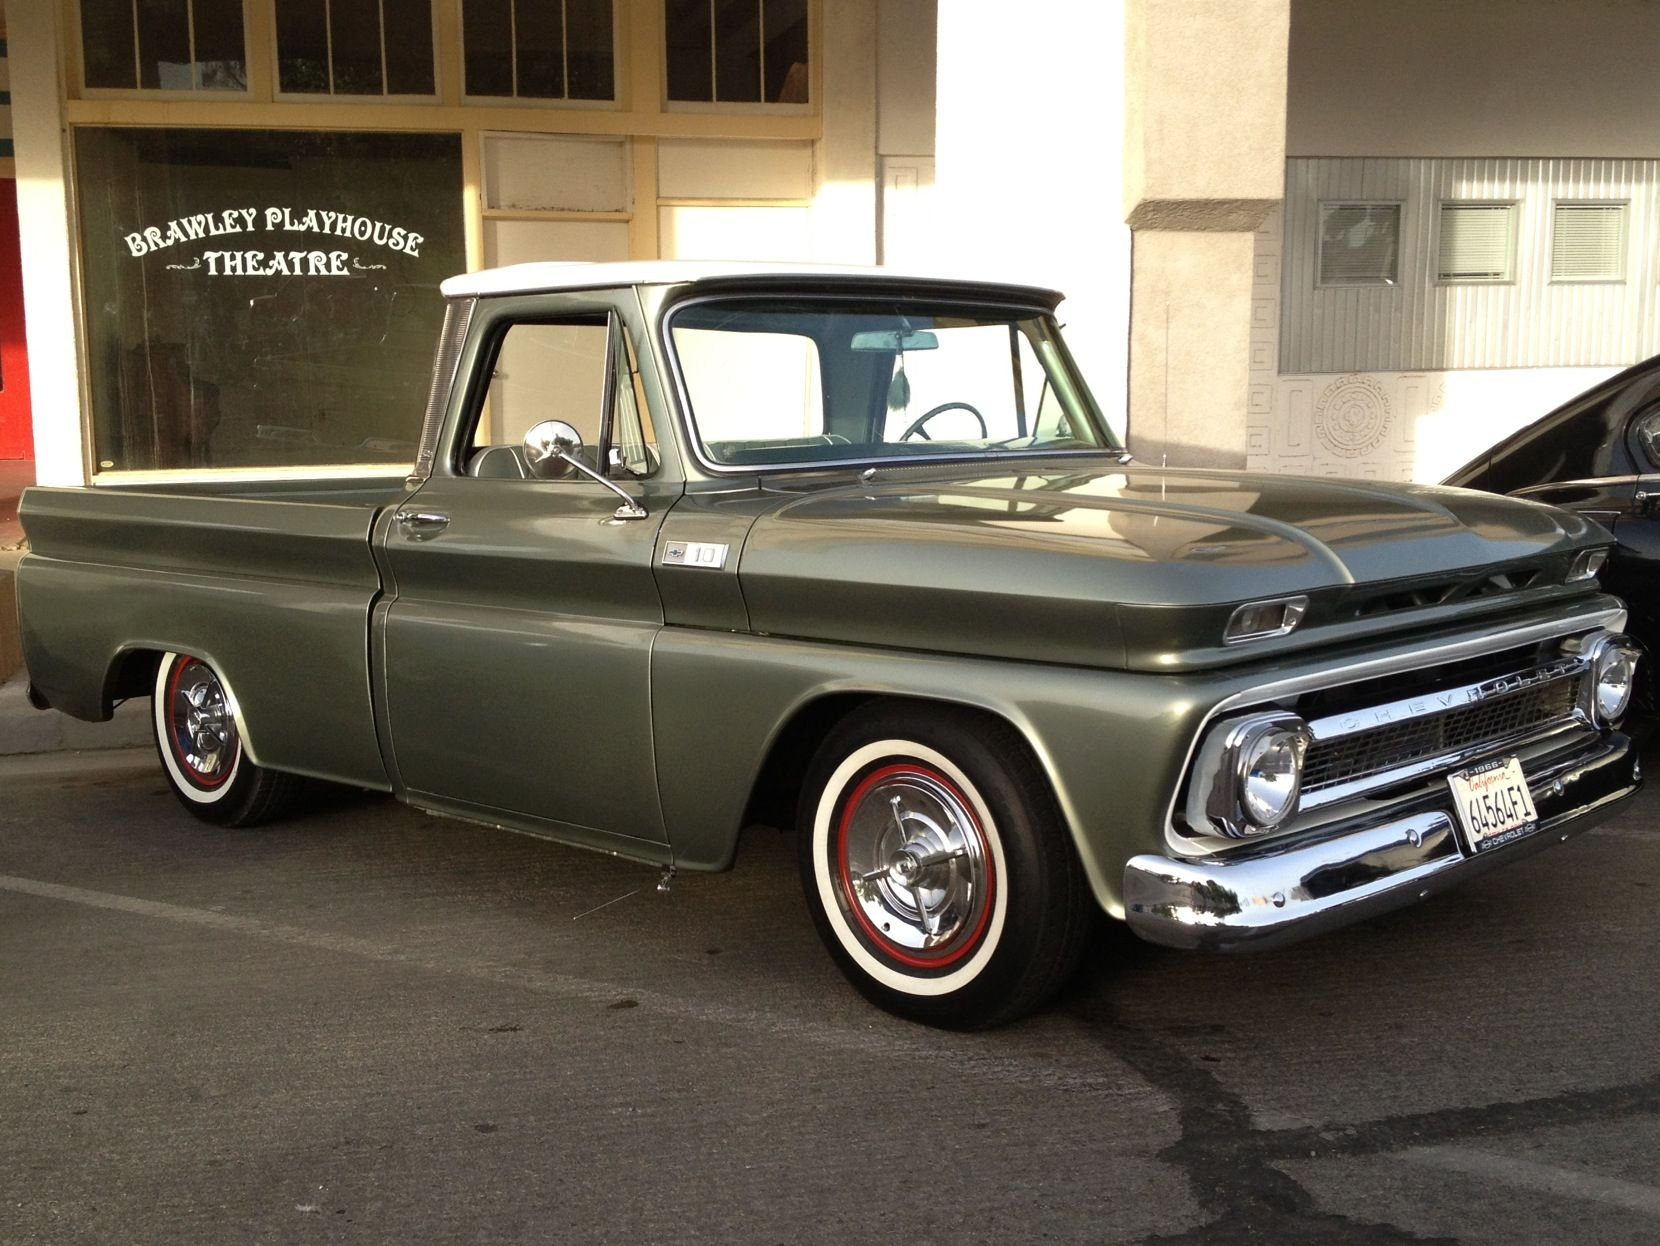 The 25 best 1966 chevy truck ideas on pinterest 72 chevy truck new chevy truck and classic chevy trucks